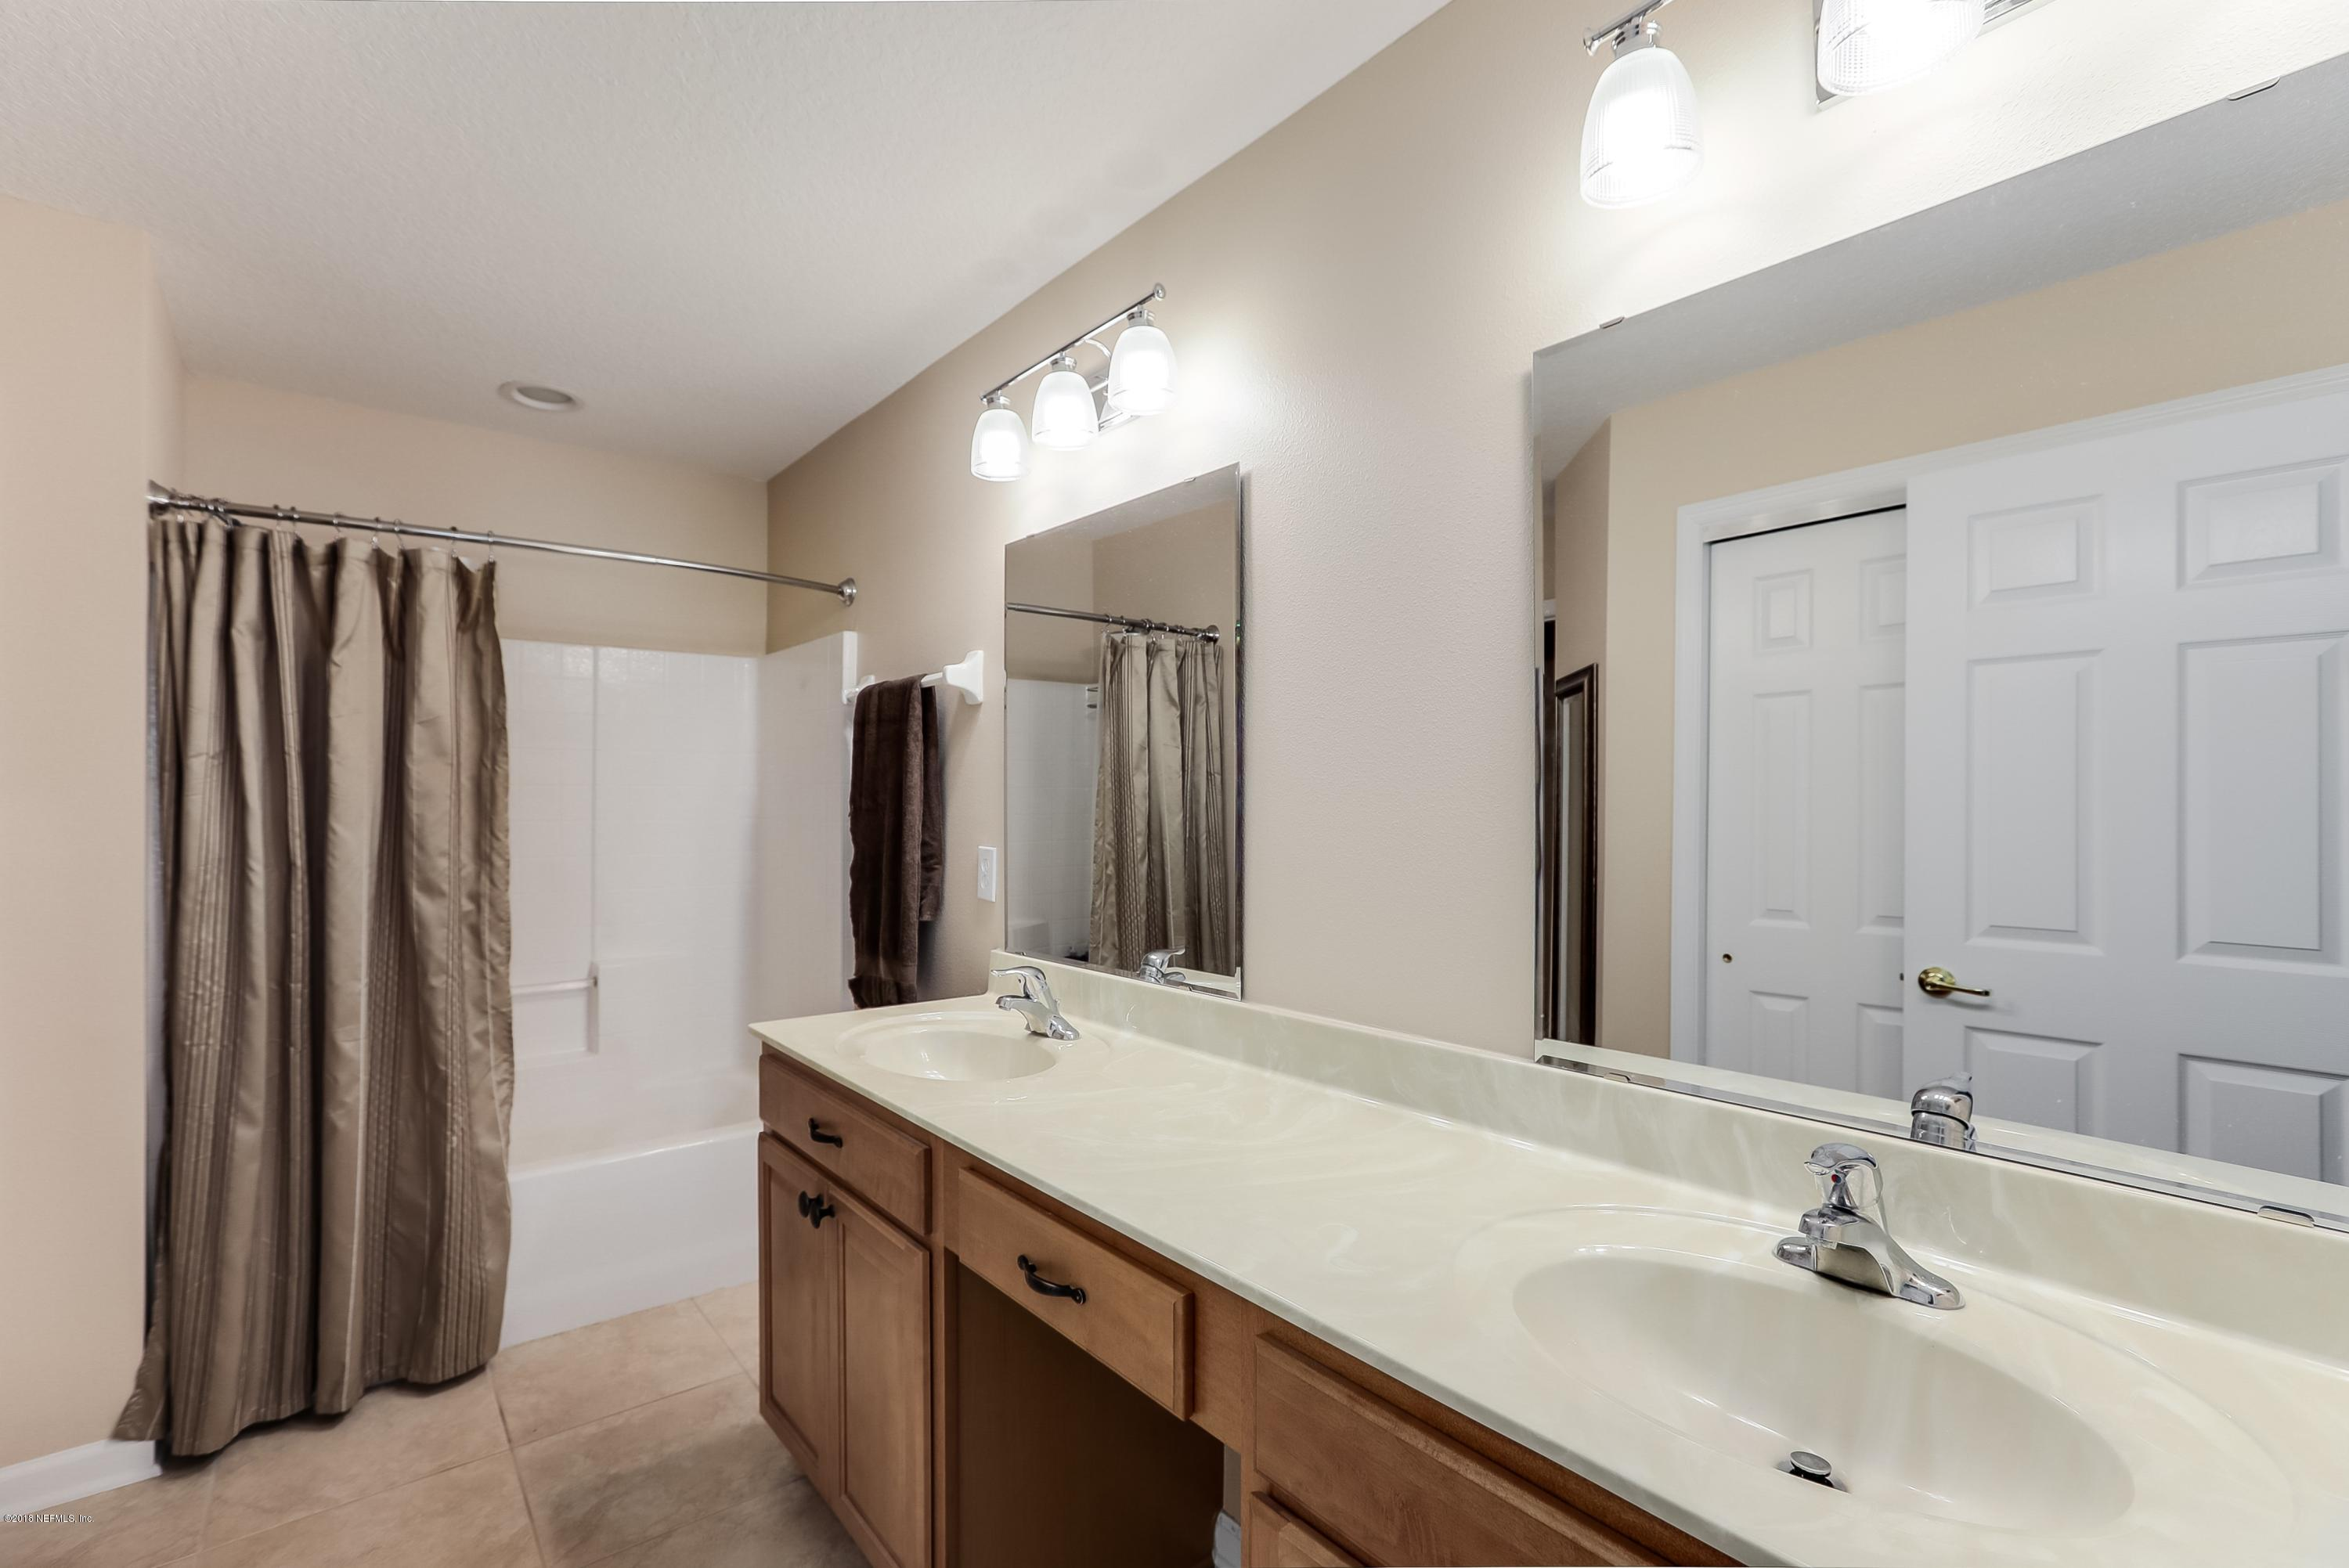 368 WOODED CROSSING, ST AUGUSTINE, FLORIDA 32084, 4 Bedrooms Bedrooms, ,3 BathroomsBathrooms,Residential - townhome,For sale,WOODED CROSSING,965475